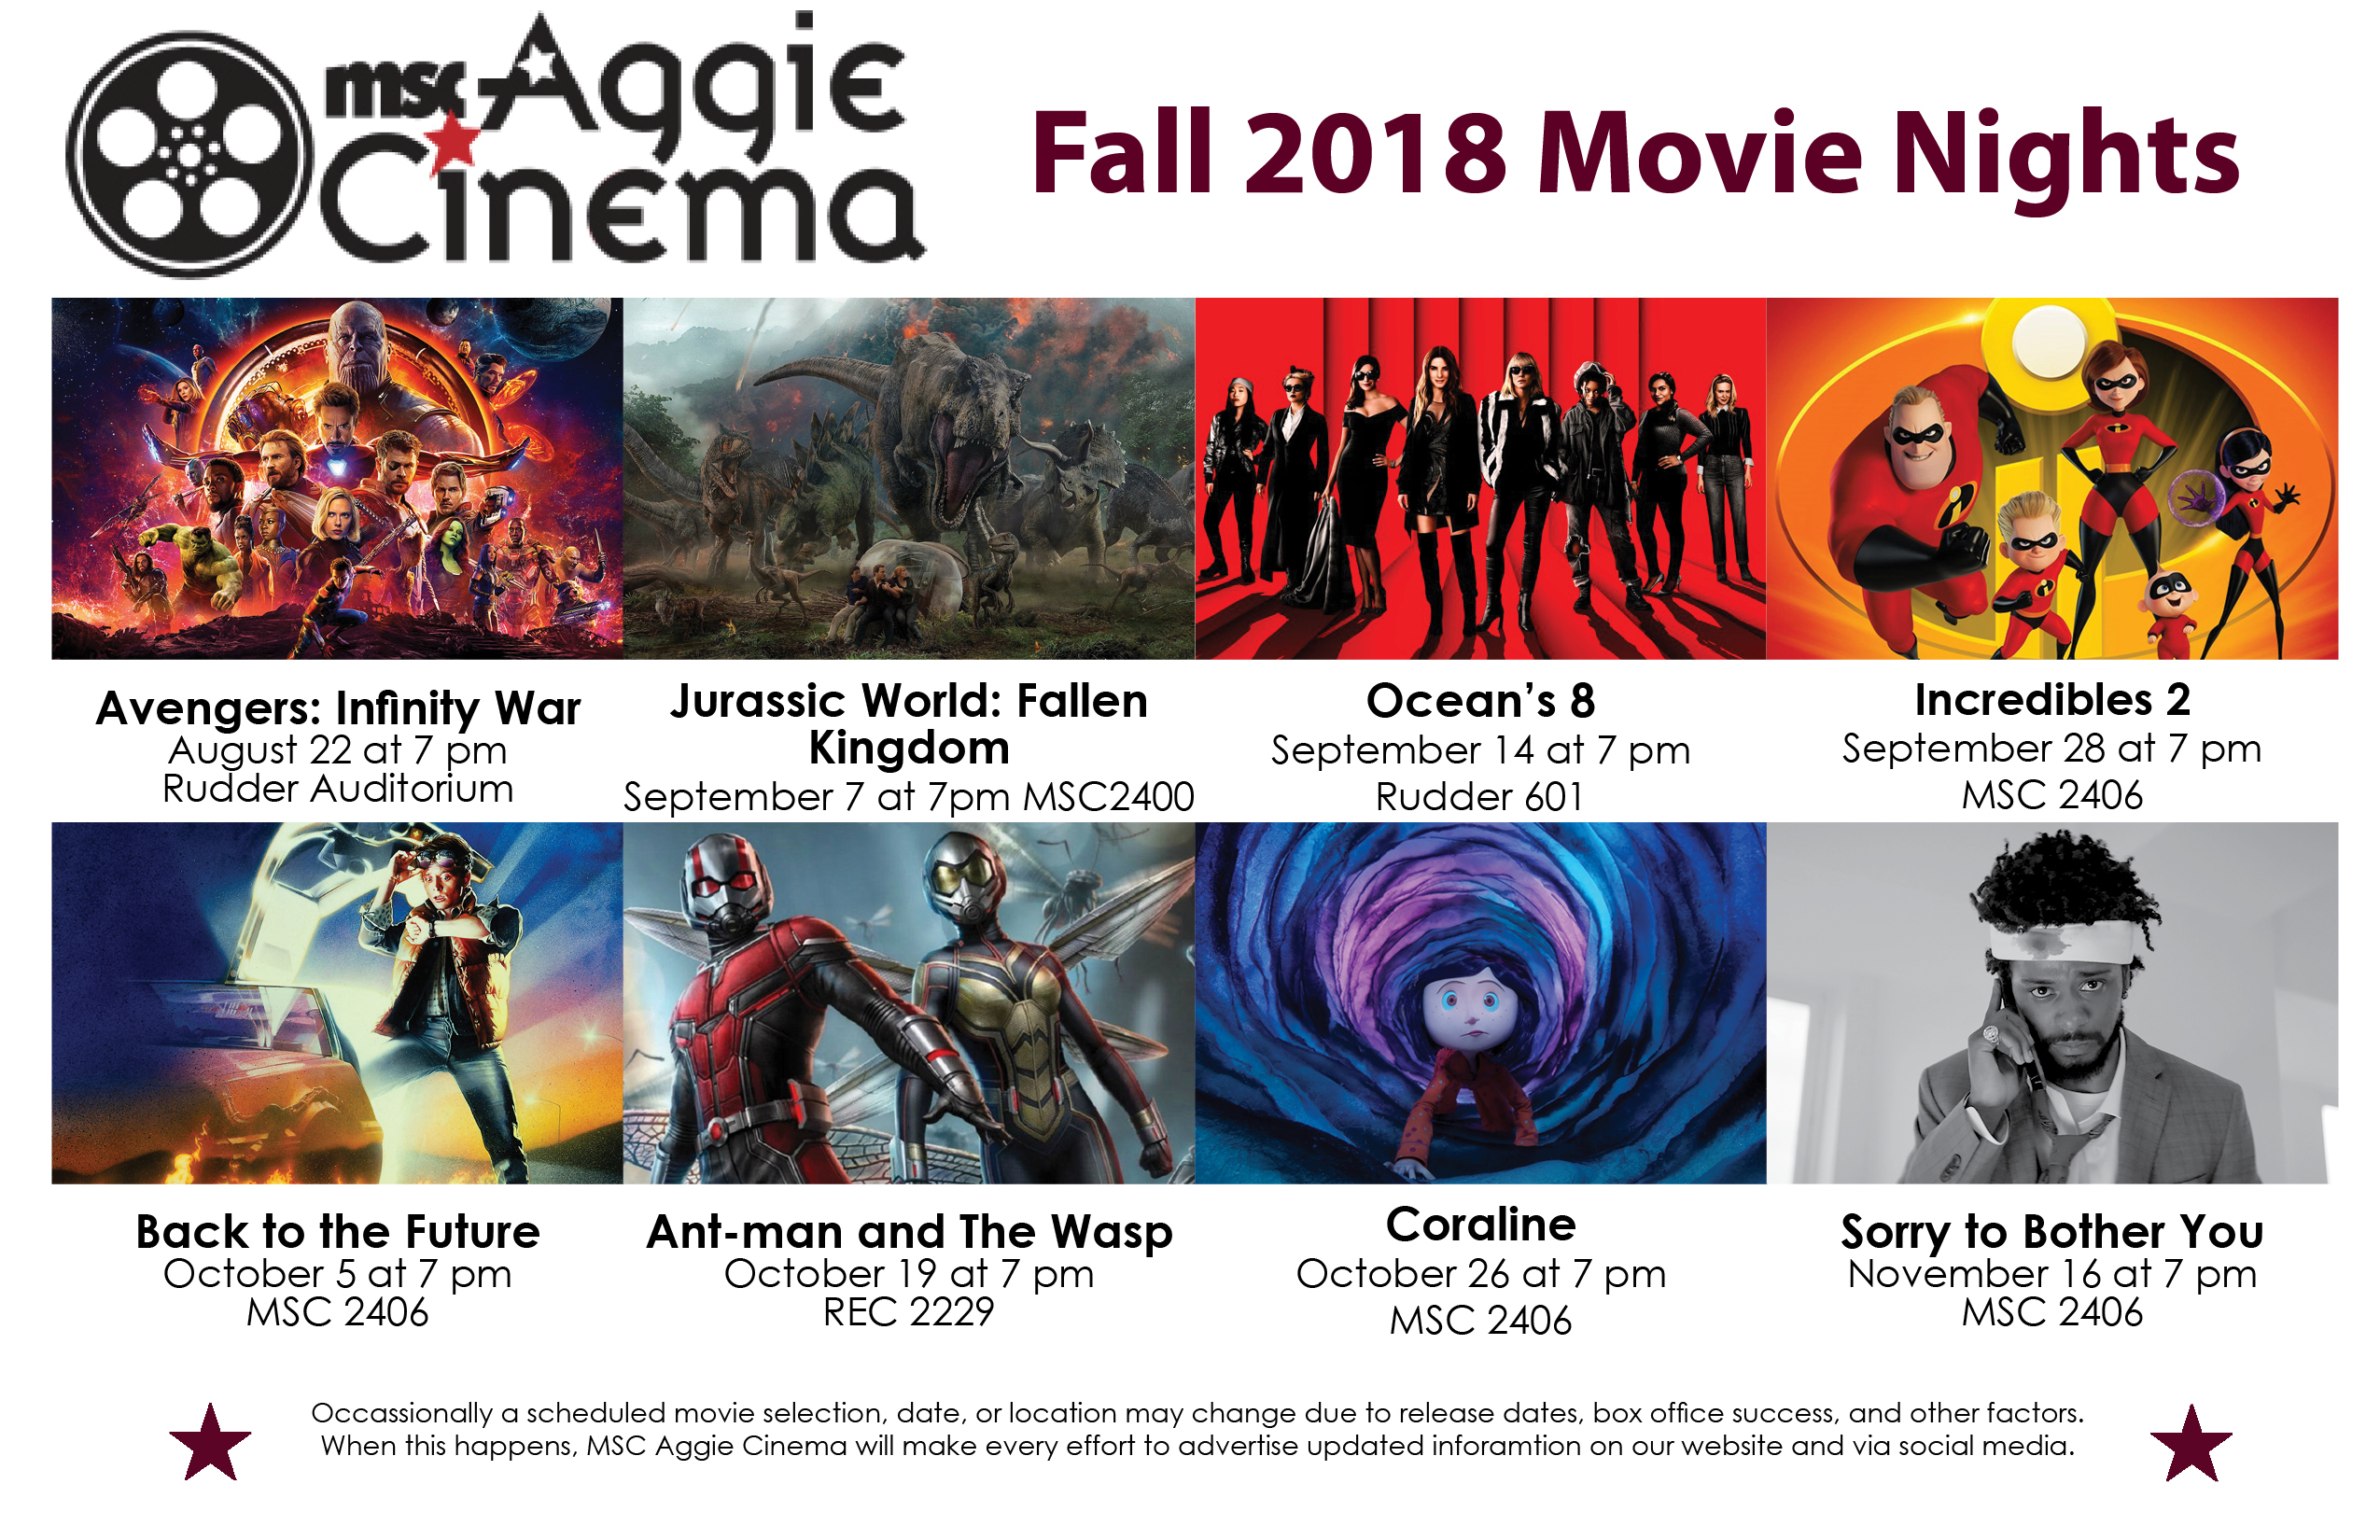 Aggie Cinema's Fall 2018 Films 8/22 Avengers Infinity War in Rudder Auditorium at 7 pm 9/7 Jurassic World: Fallen Kingdom in MSC 2400 at 7 pm 9/14 Ocean's 8 in Rudder 601 at 7 pm 9/28 Incredibles 2 in MSC 2406 at 7 pm 10/5 Back to the Future in MSC 2406 at 7 pm Ant-man and The Wasp in RECC 2229 at 7 pm 10/26 Coraline in MSC 2406 at 7 pm 11/16 Sorry to Bother You in MSC 2406 at 7 pm